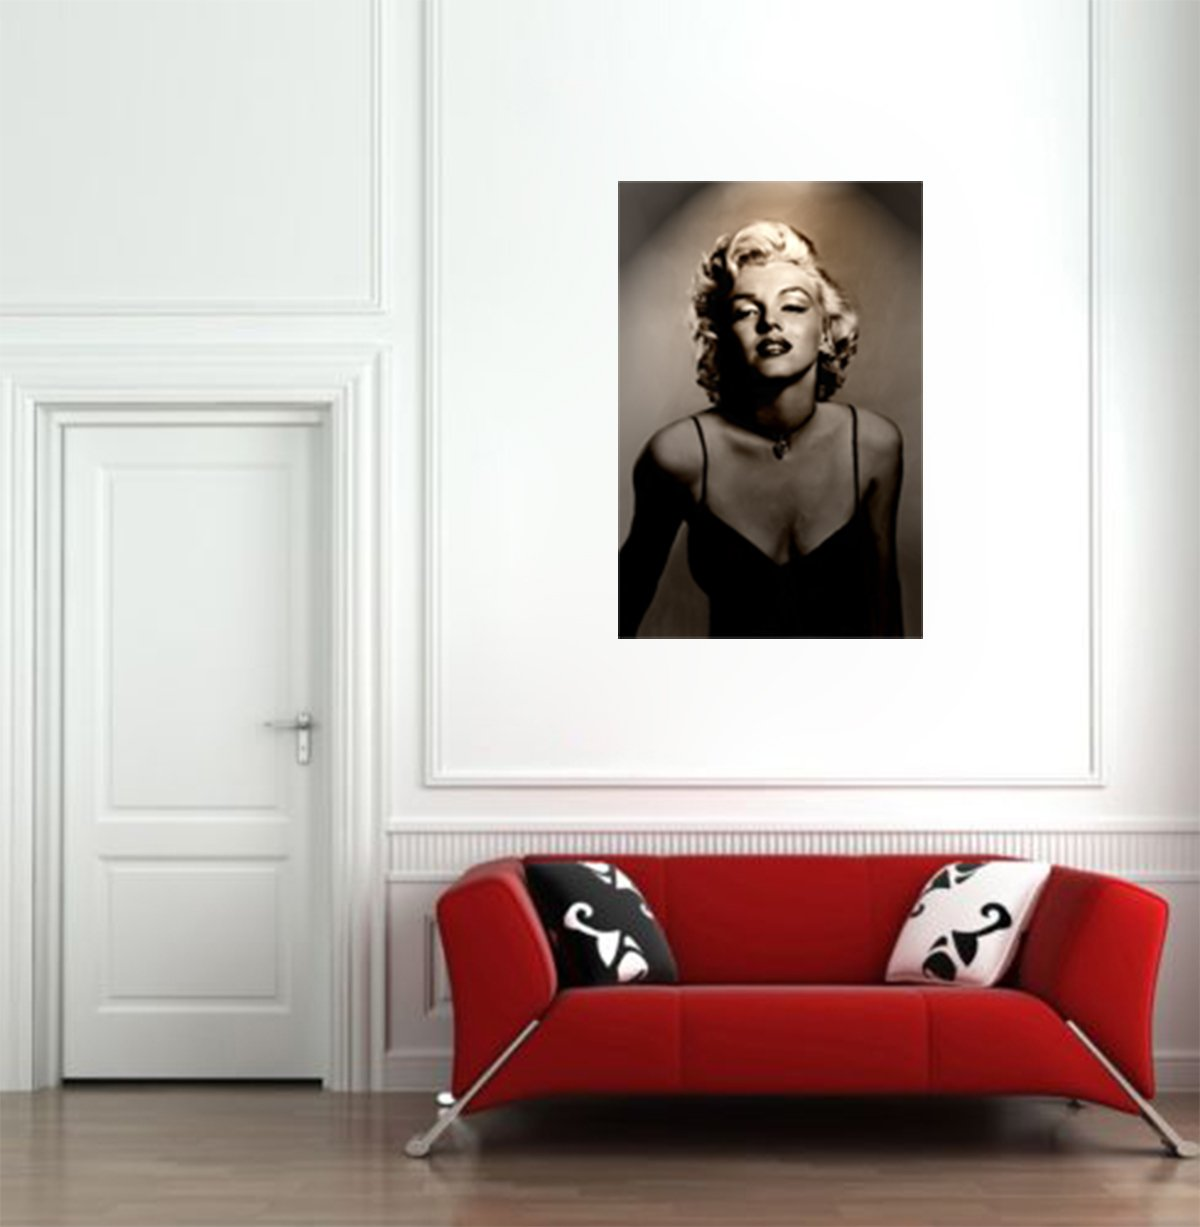 Merveilleux Amazon.com: Marilyn Monroe Vintage Black U0026 White Print On Canvas Giant Wall  Art 24x36: Black And White Wall Art: Posters U0026 Prints